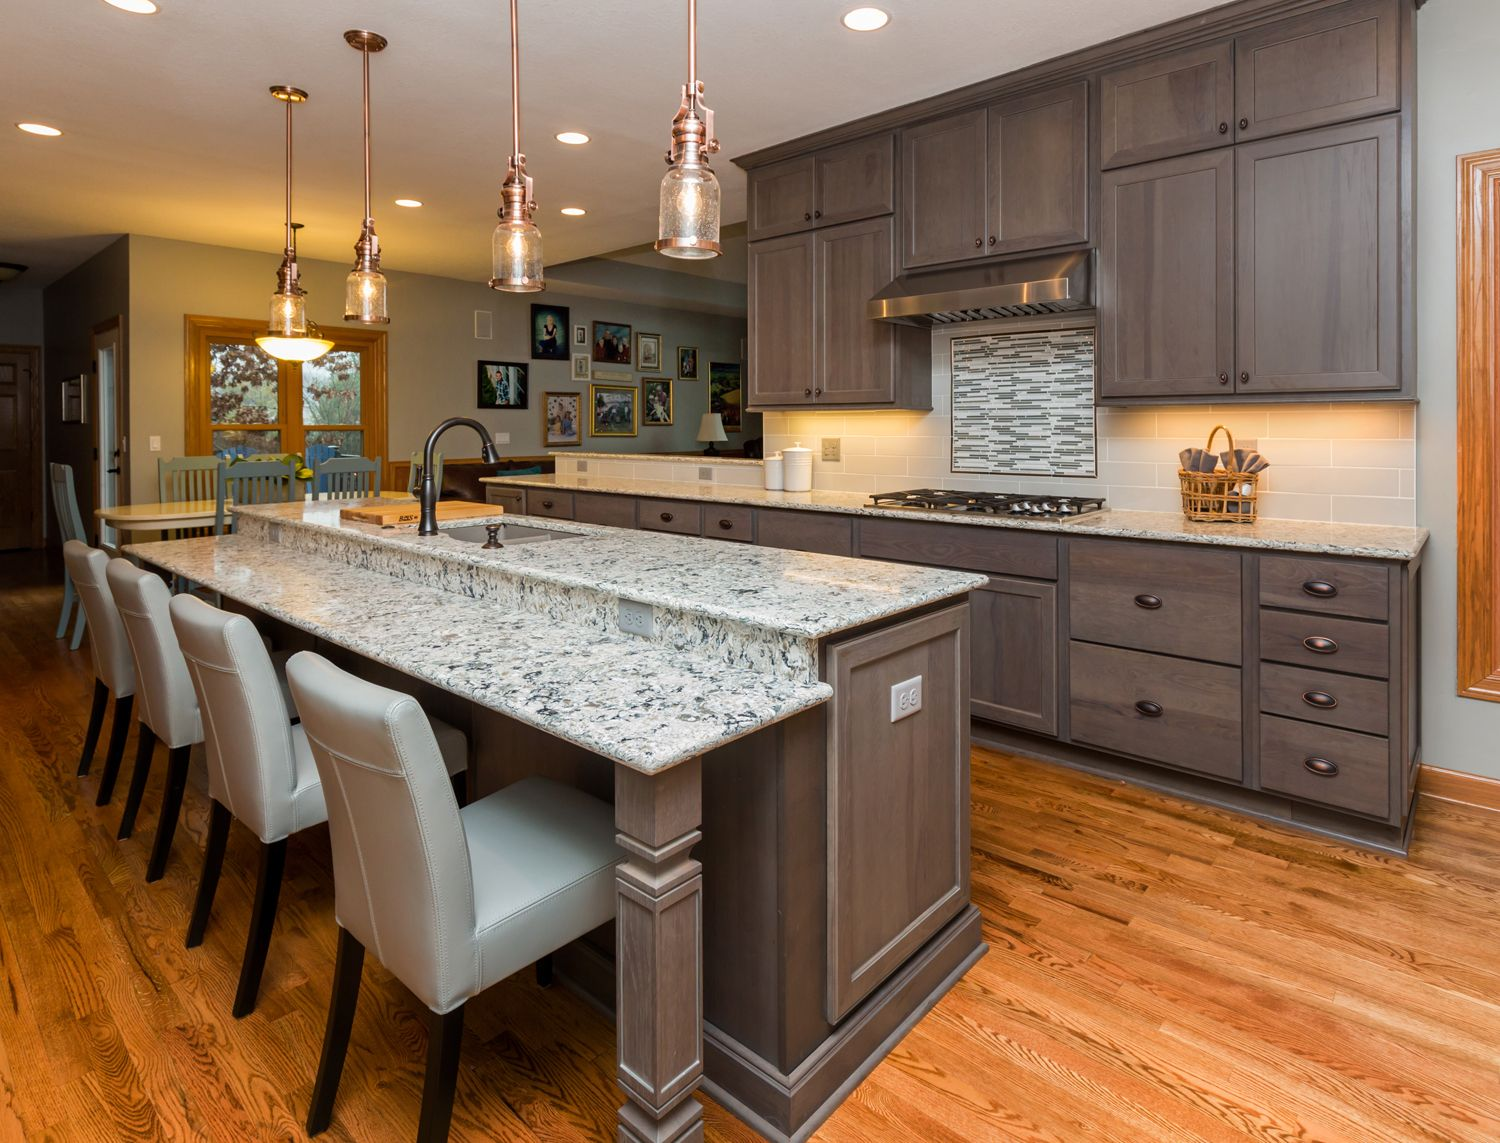 island seating areas can be raised even or even lower like this large island home on kitchen island ideas organization id=85700